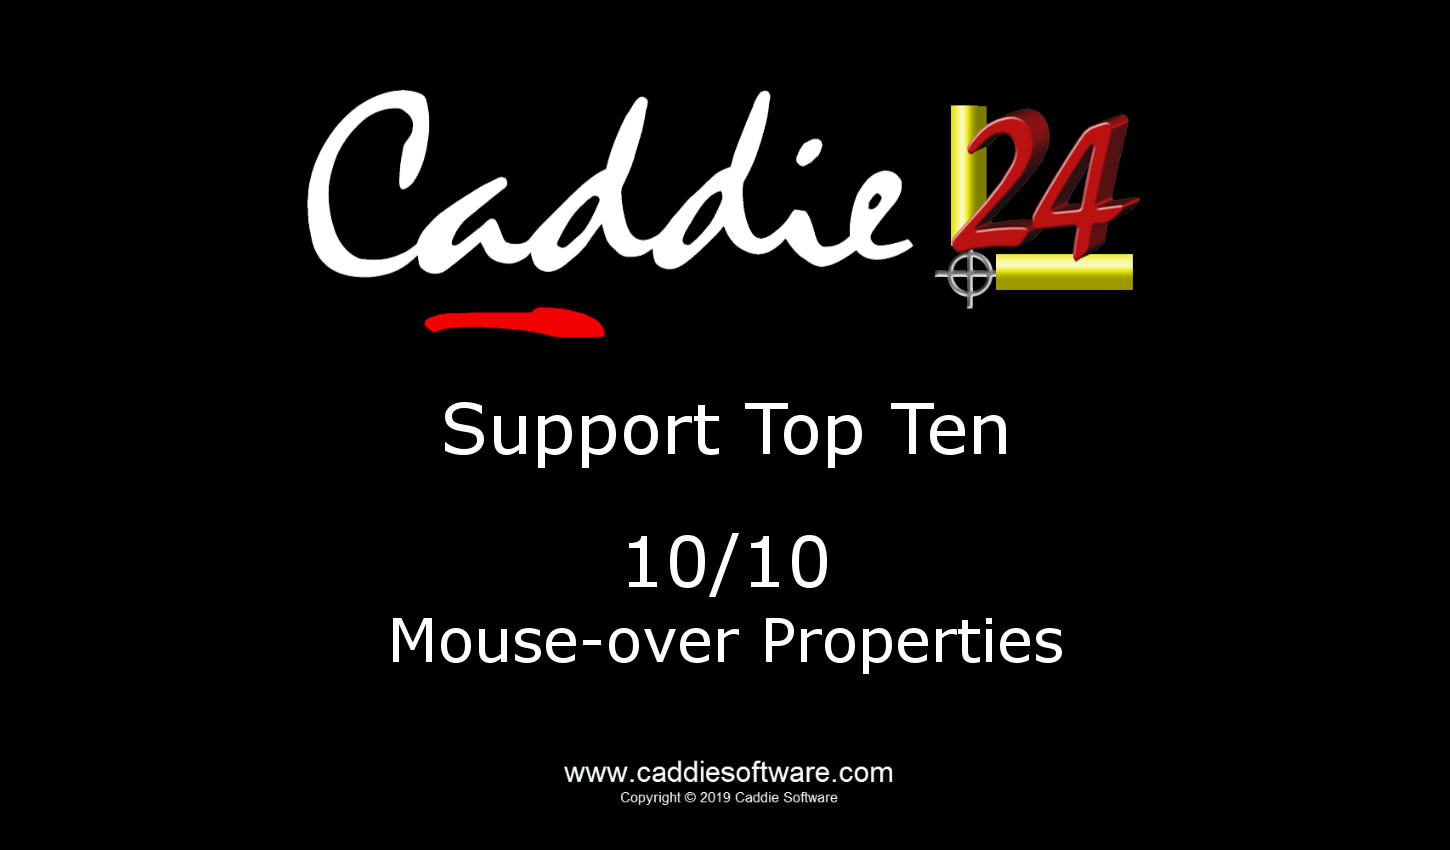 # 10/10 Mouse-over Properties